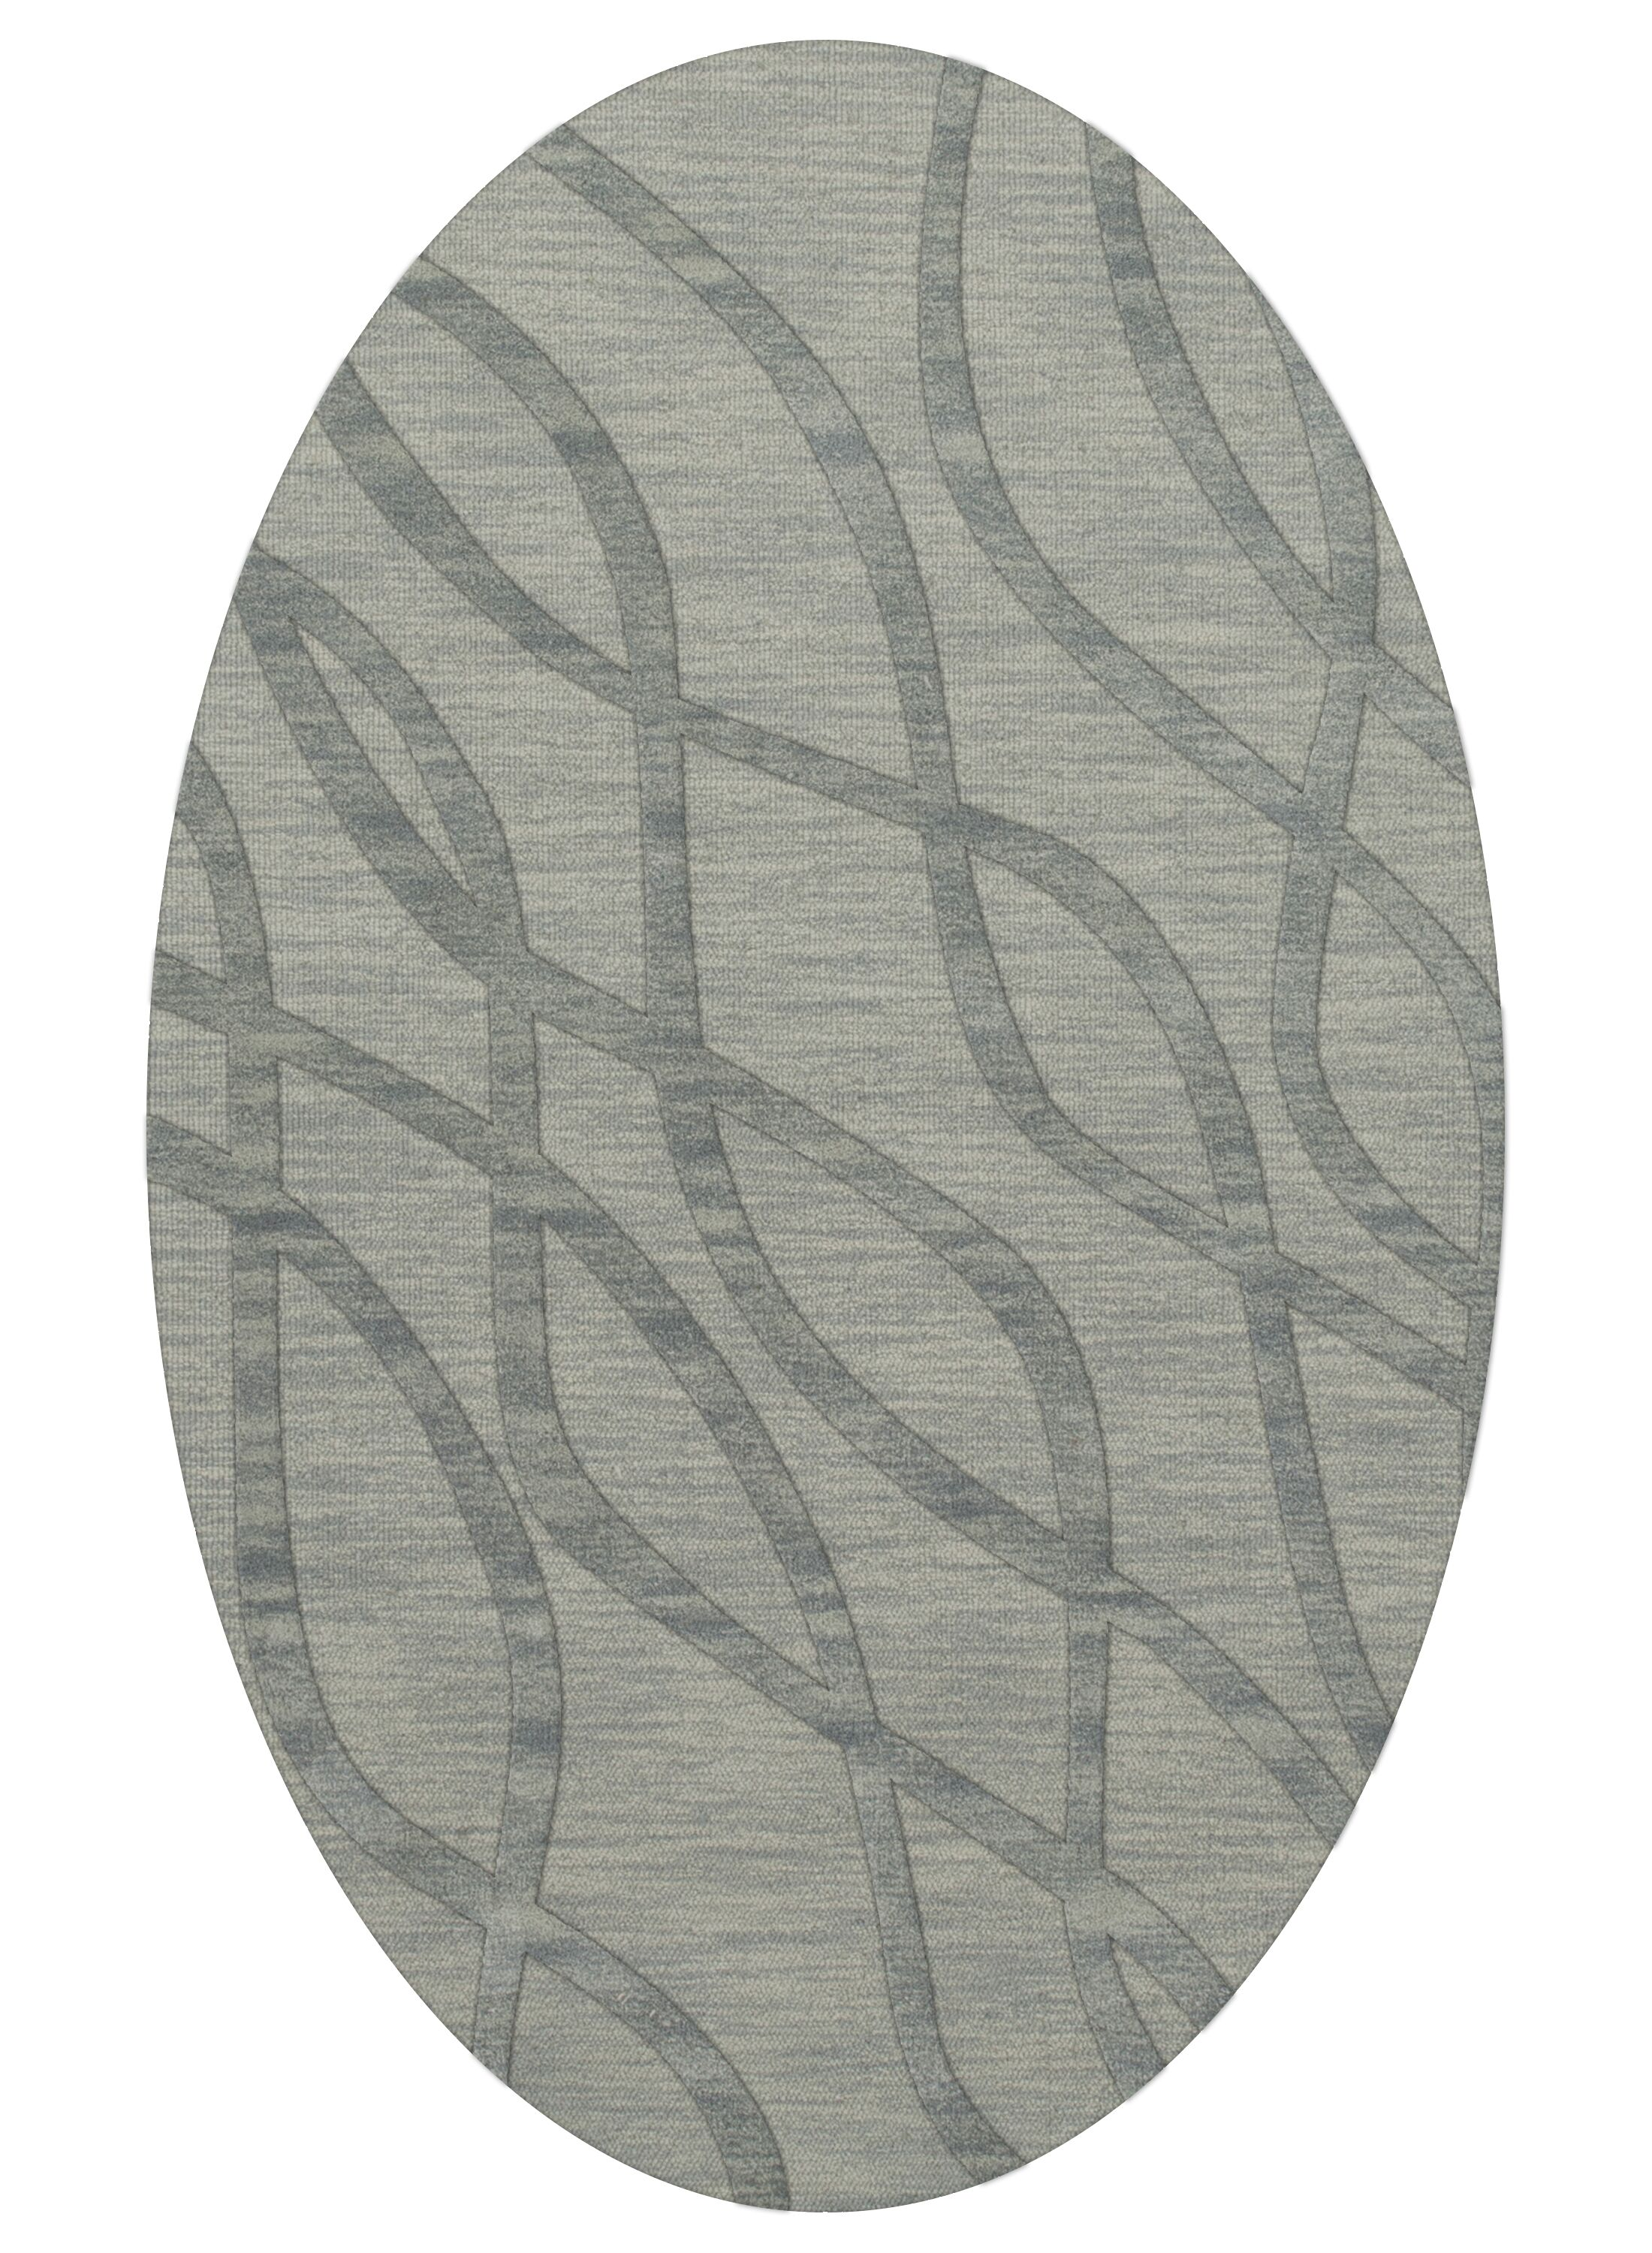 Dover Tufted Wool Sea Glass Area Rug Rug Size: Oval 9' x 12'